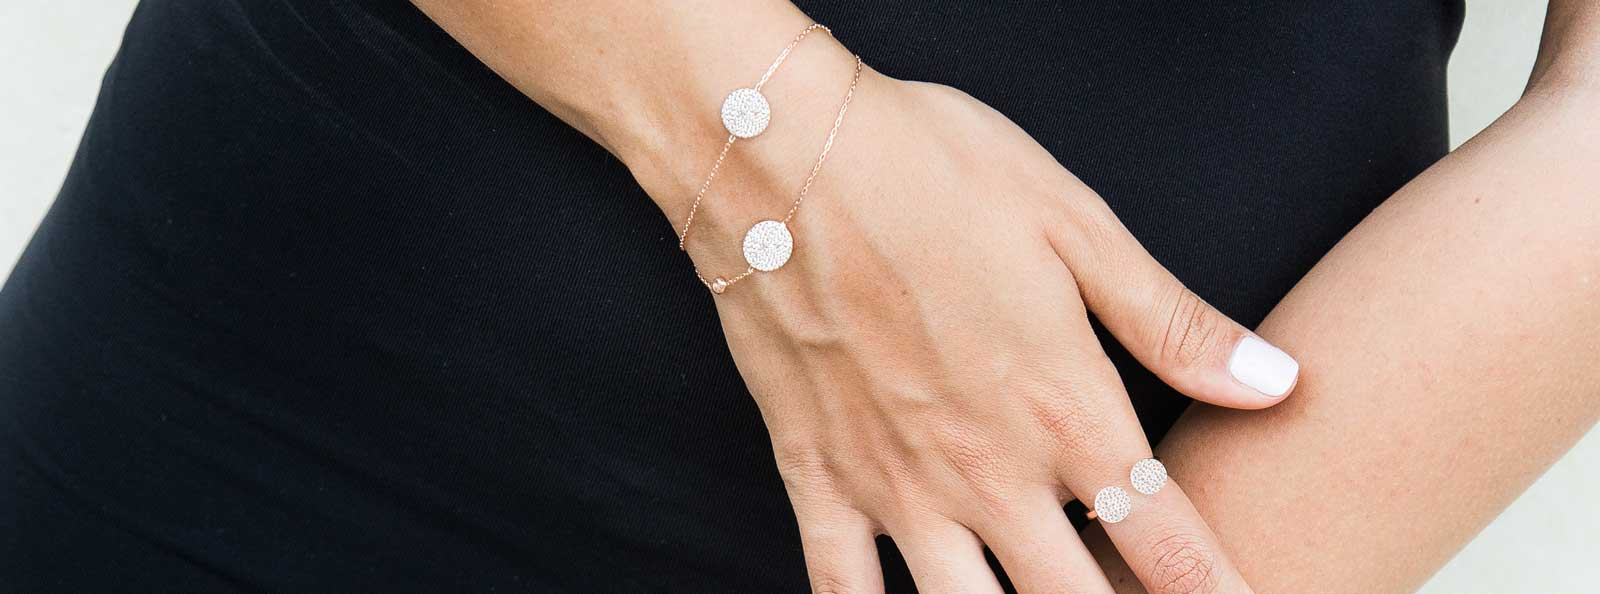 Edellie jewelry shop - discover our collections